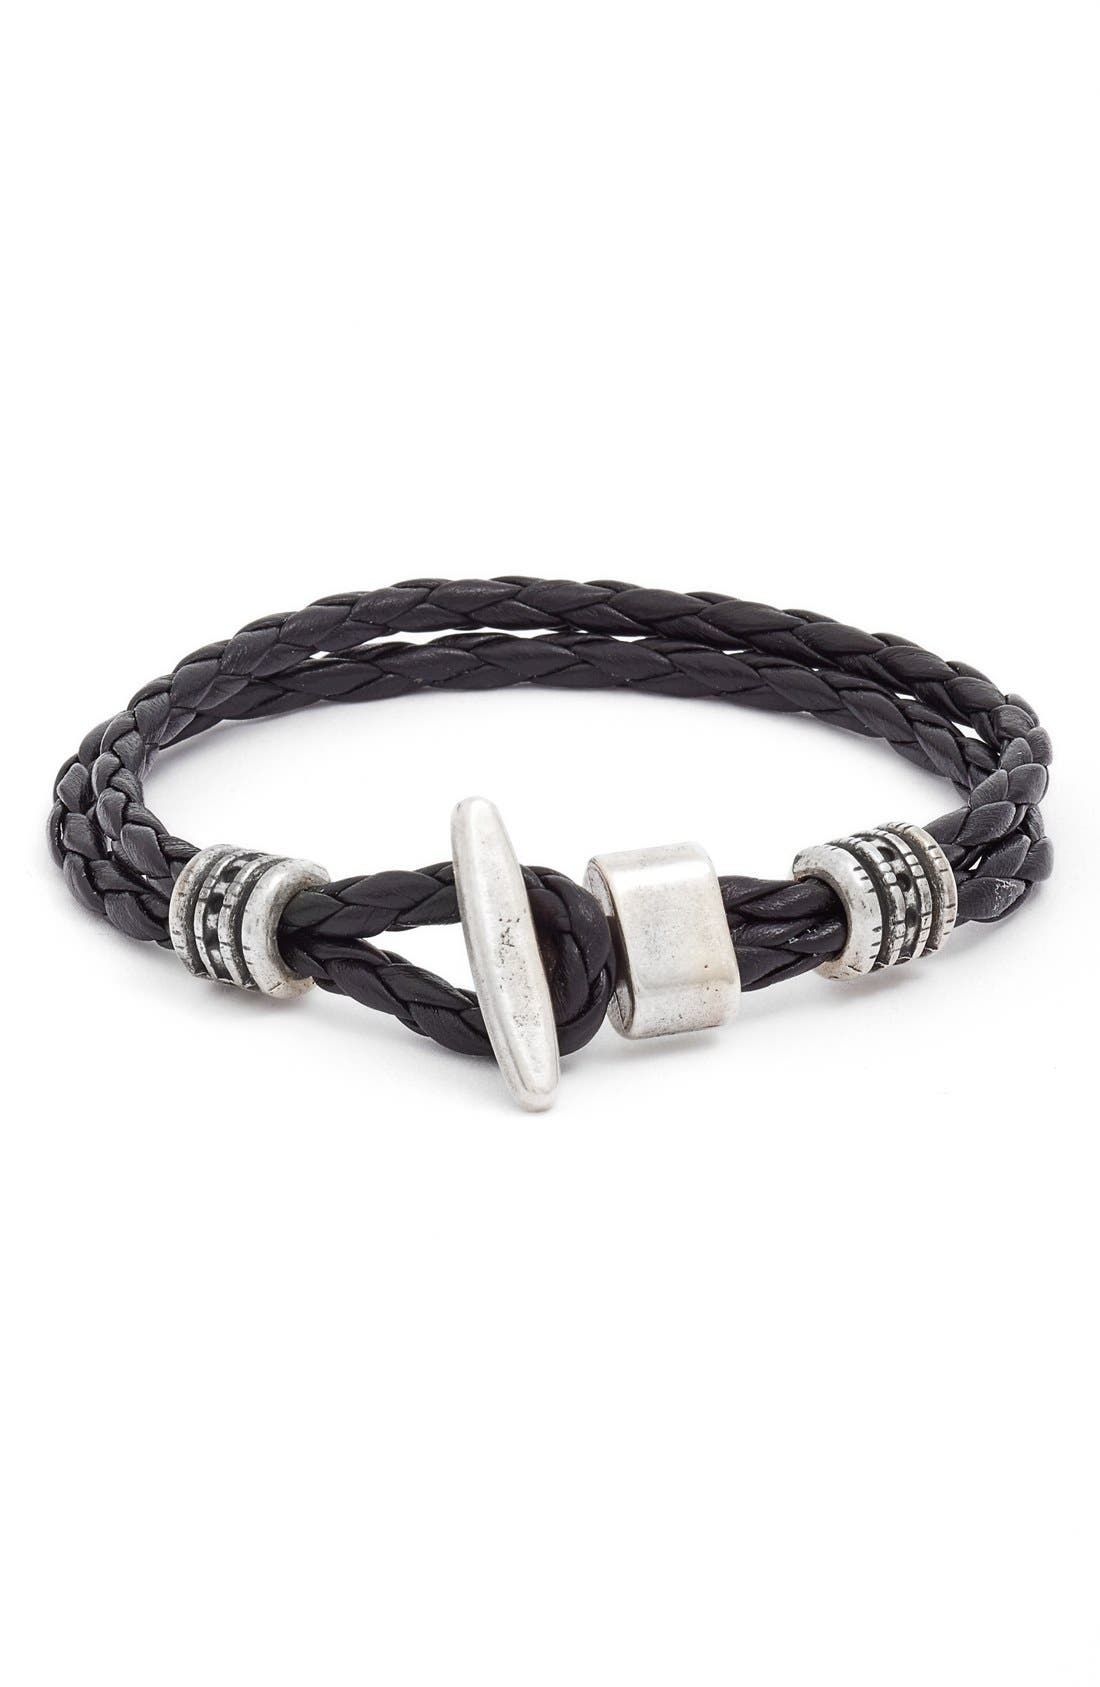 Braided Leather Bracelet,                             Main thumbnail 1, color,                             001